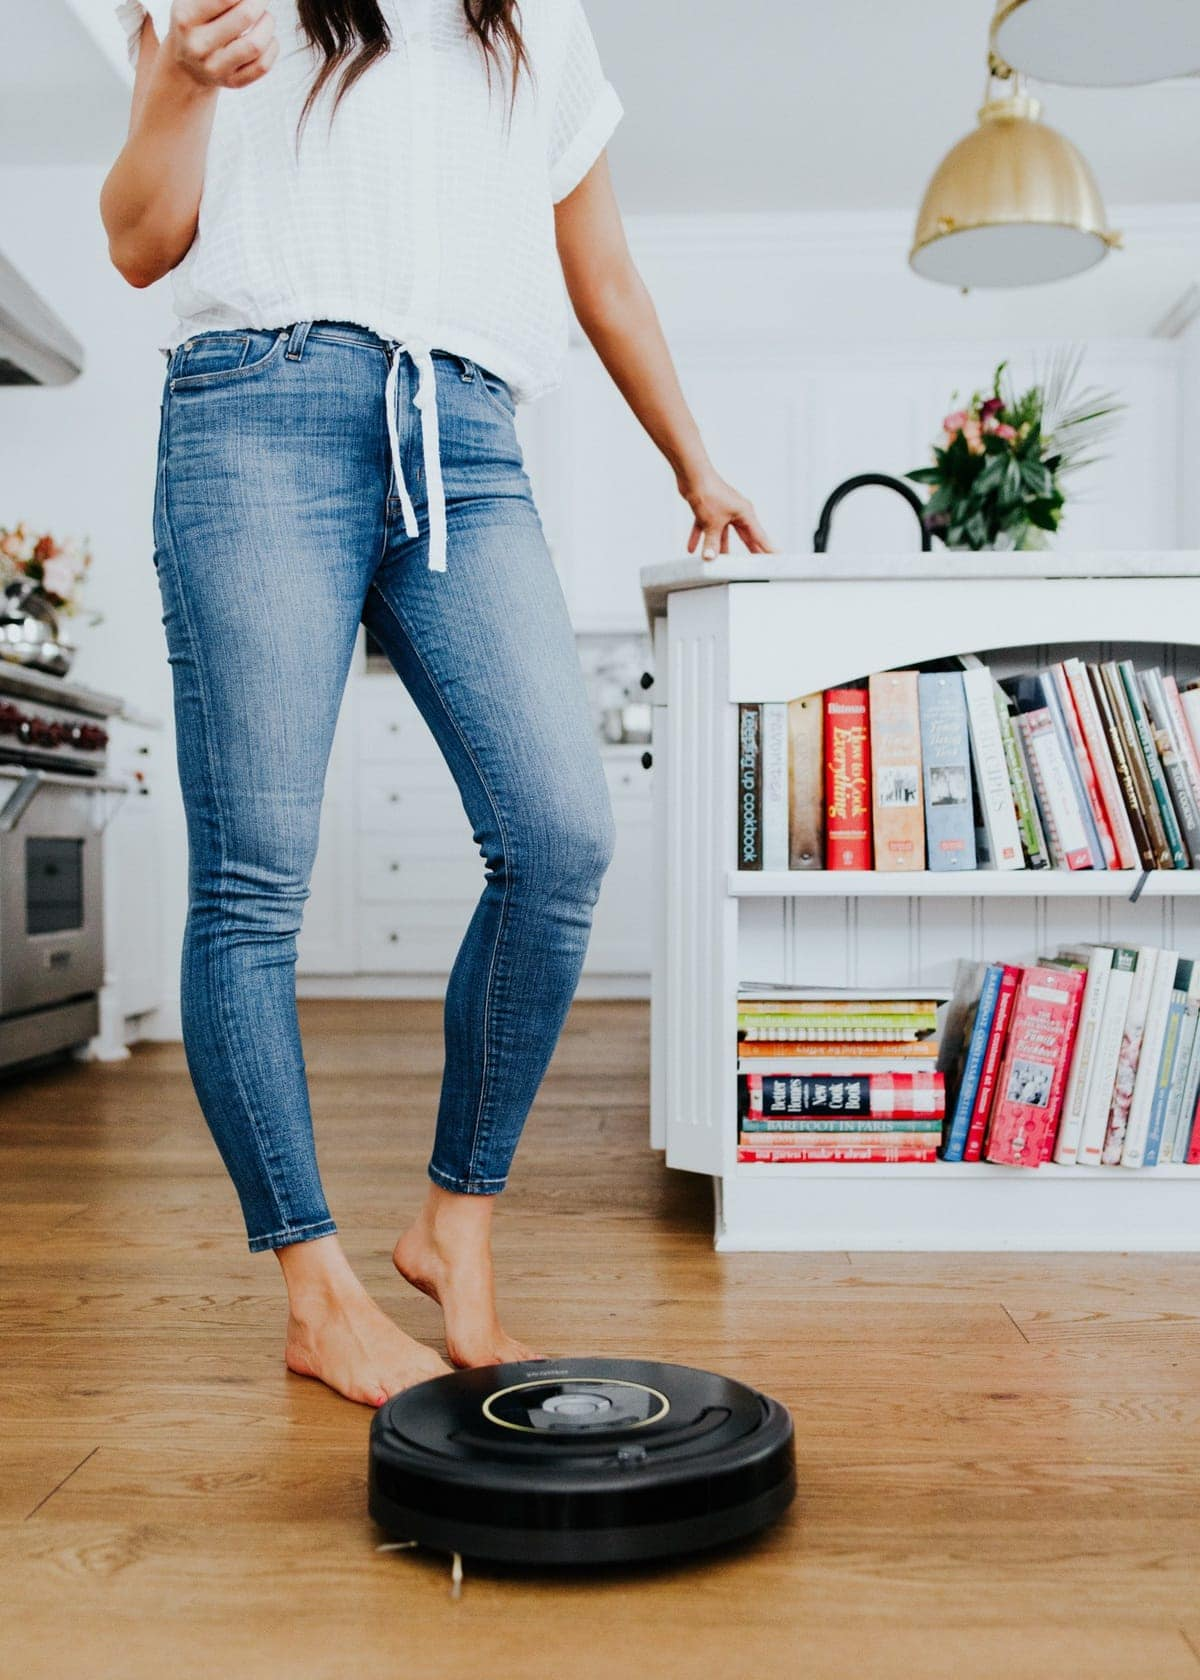 Roomba Vacuum Prime Day Deal